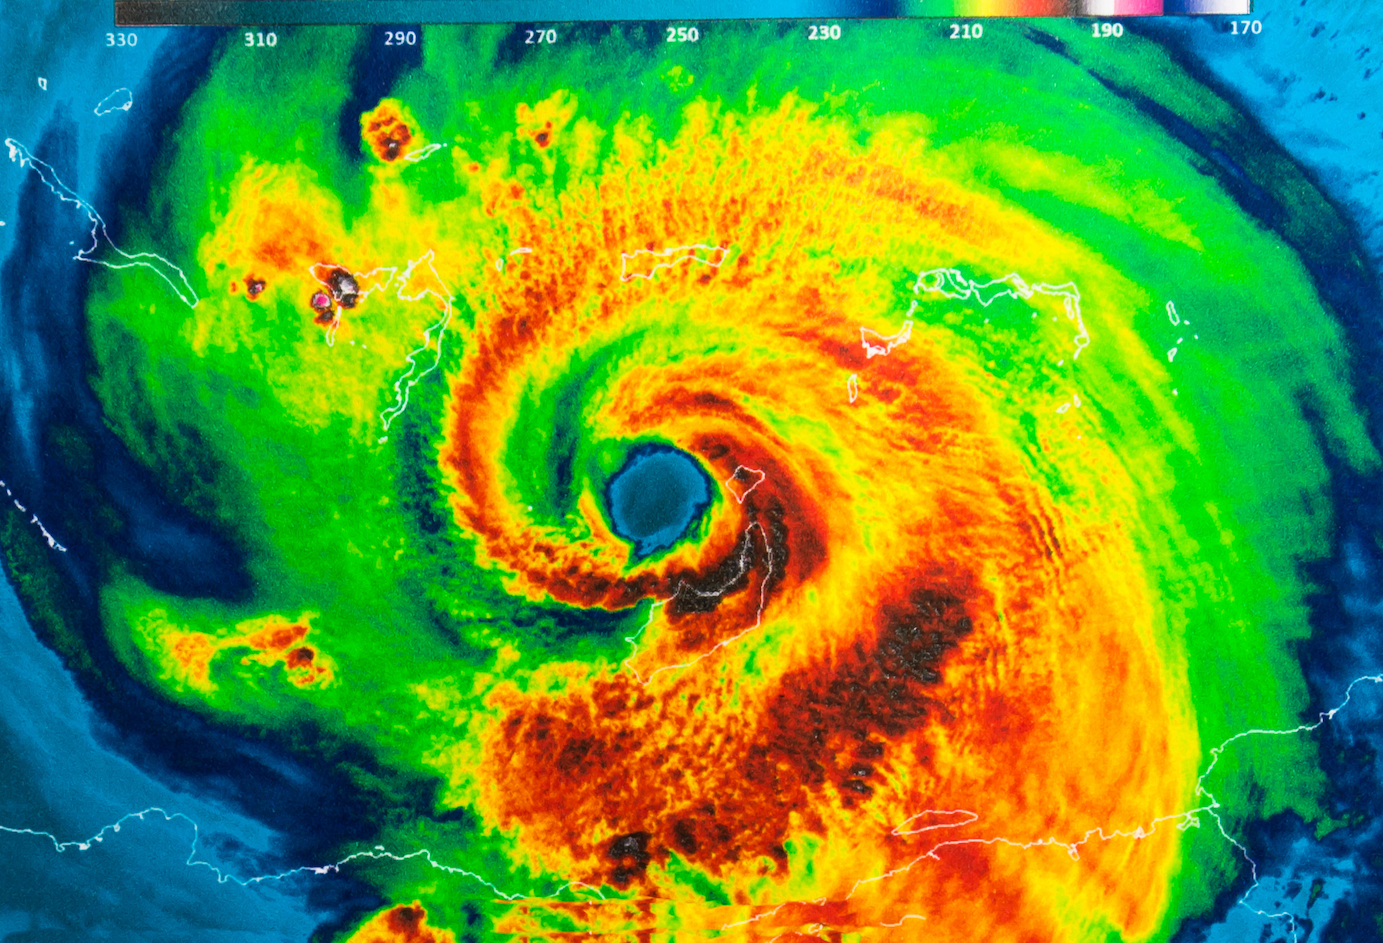 While the Trump Administration repeals the Clean Power Plan, Earth.com takes a look at 10 of the deadliest storms in US history.